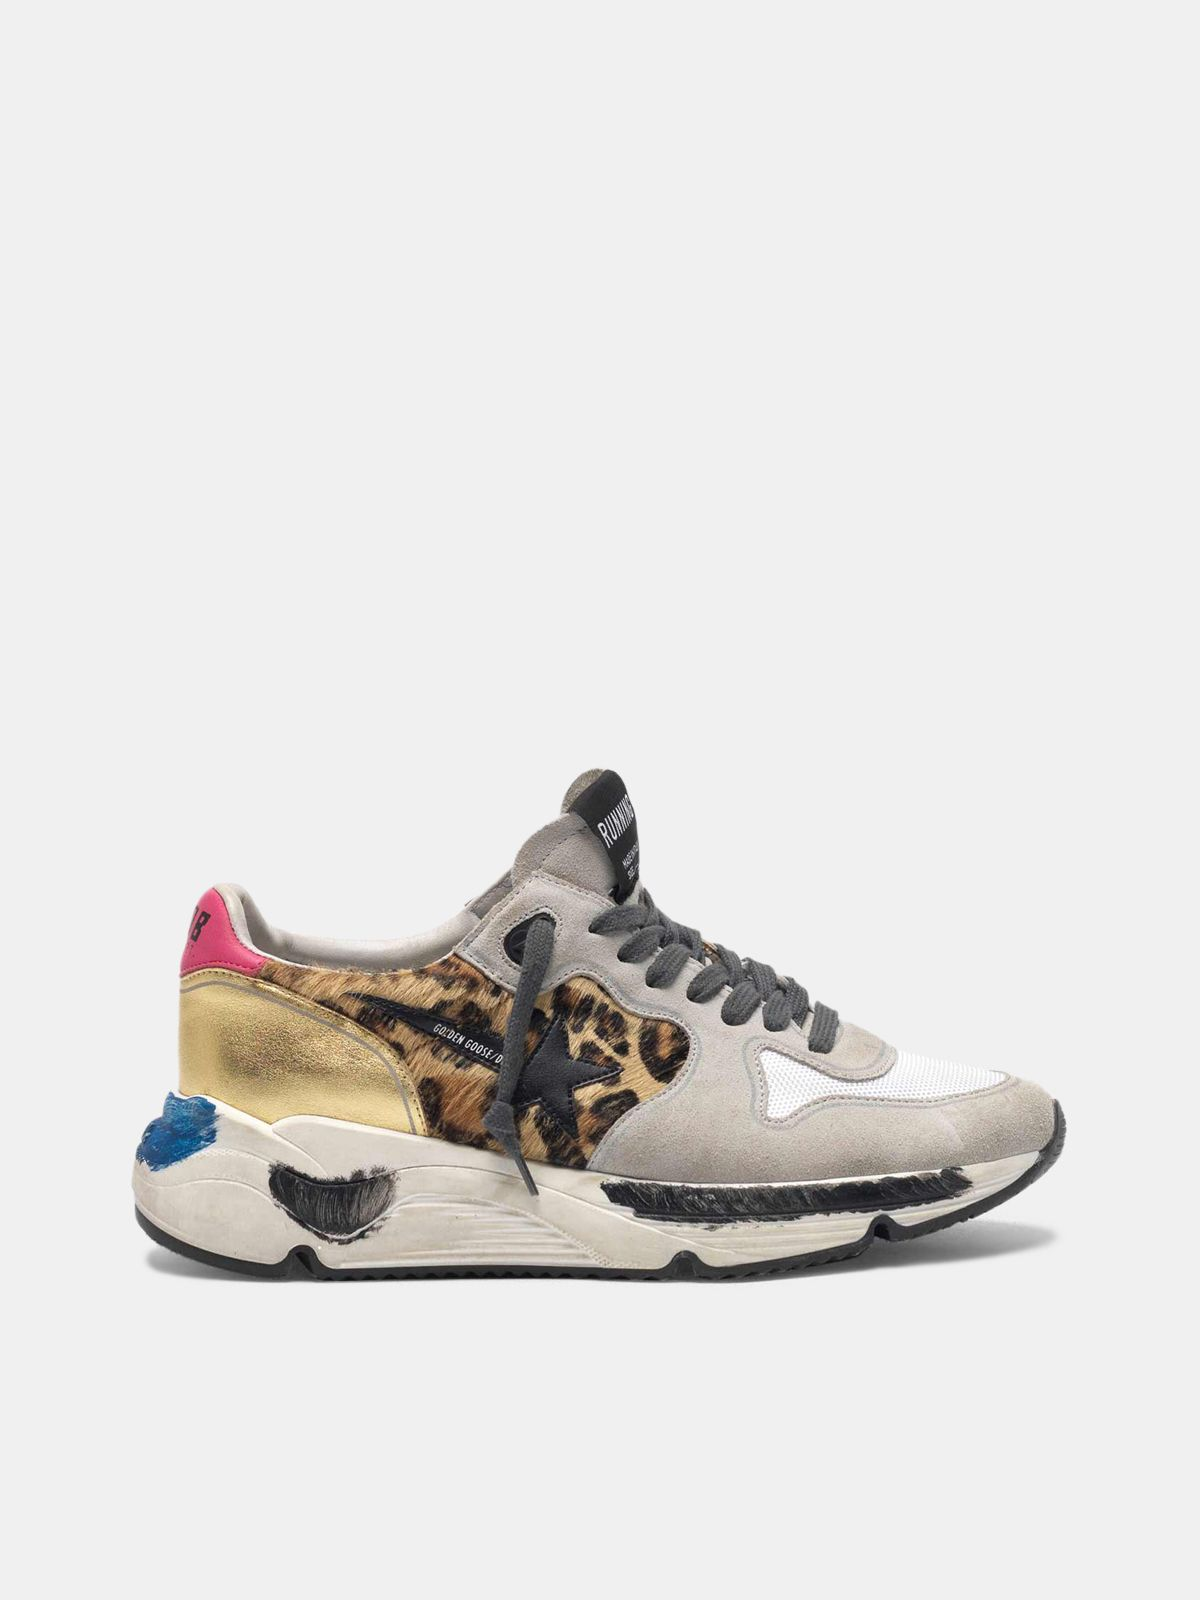 Golden Goose - Running Sole sneakers in leopard print pony skin and gold back in